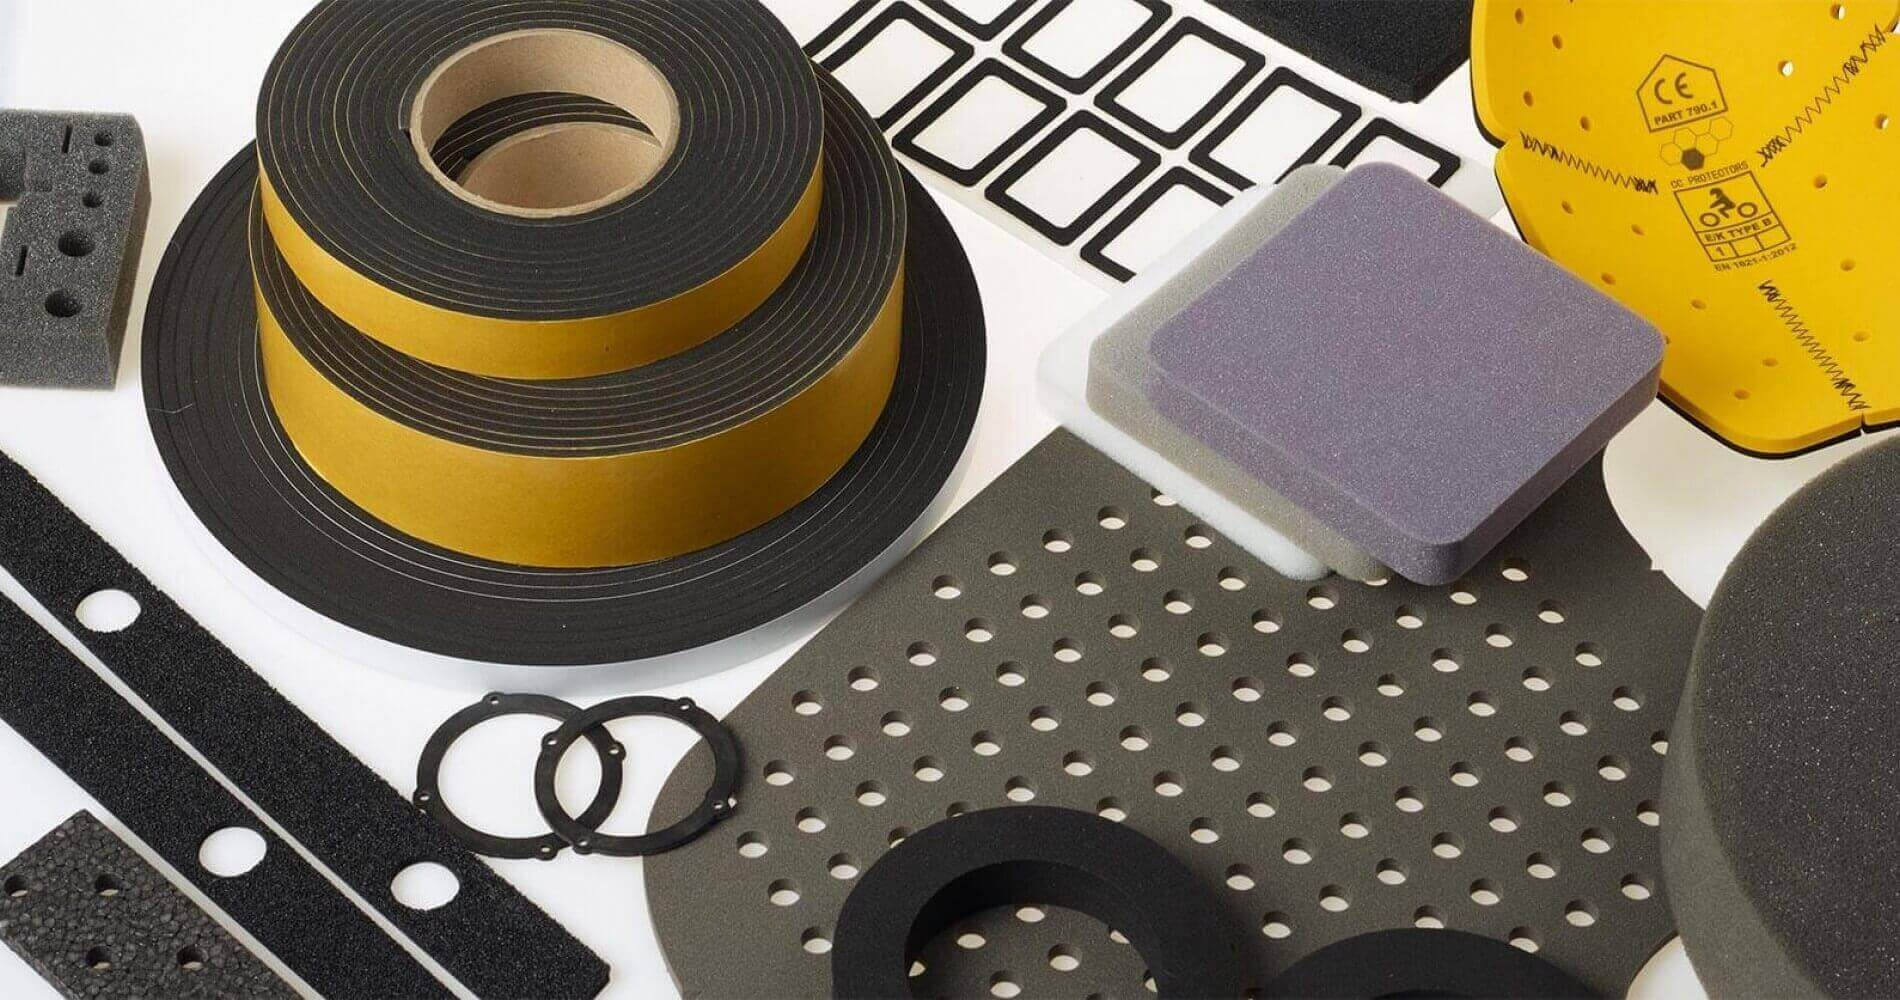 Rubber and foam materials